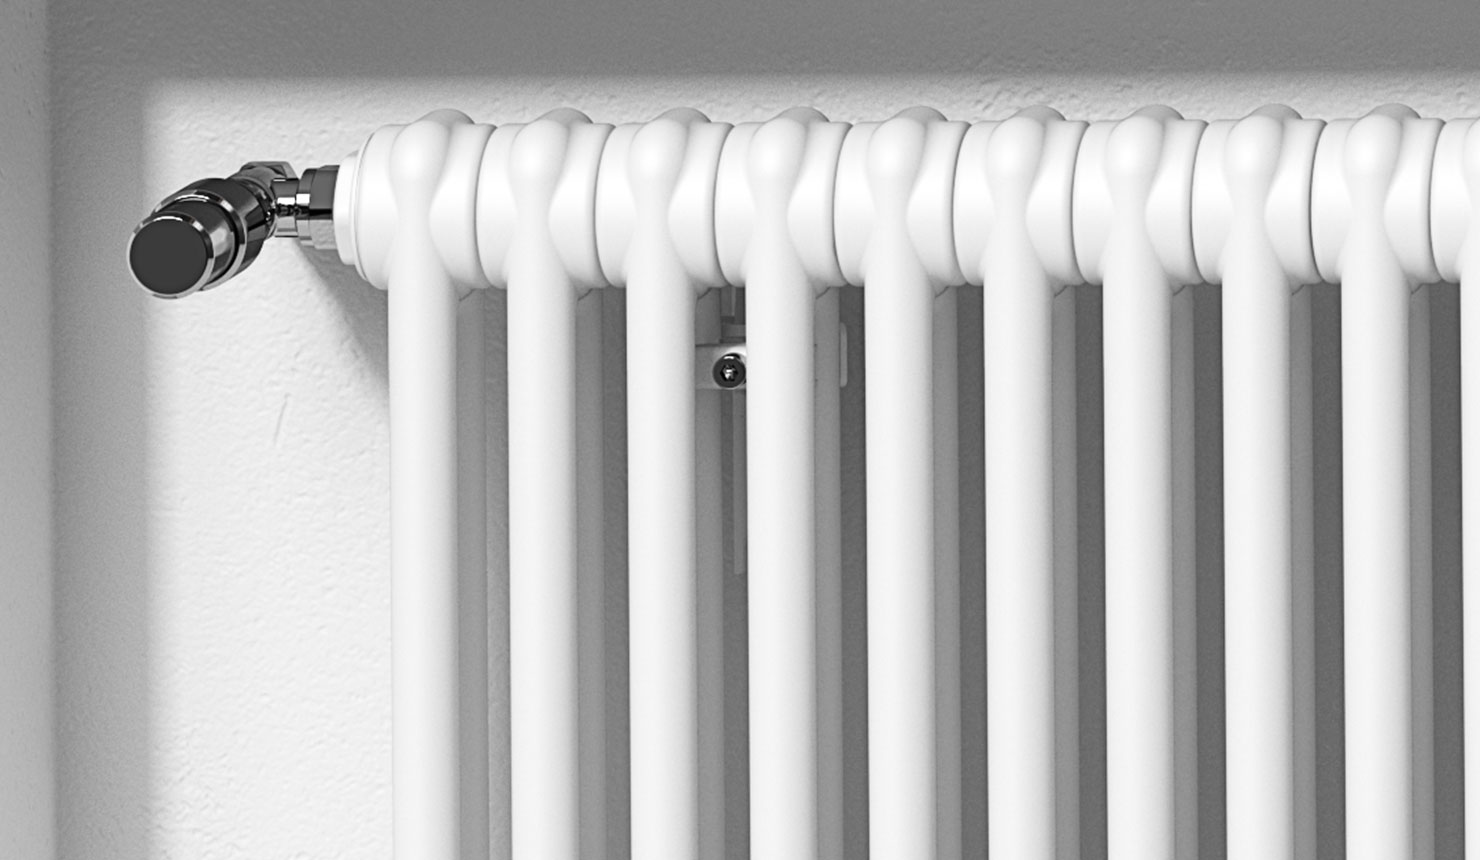 Arbonia Accessories: Thermostatic Sensor Head for Column Radiators